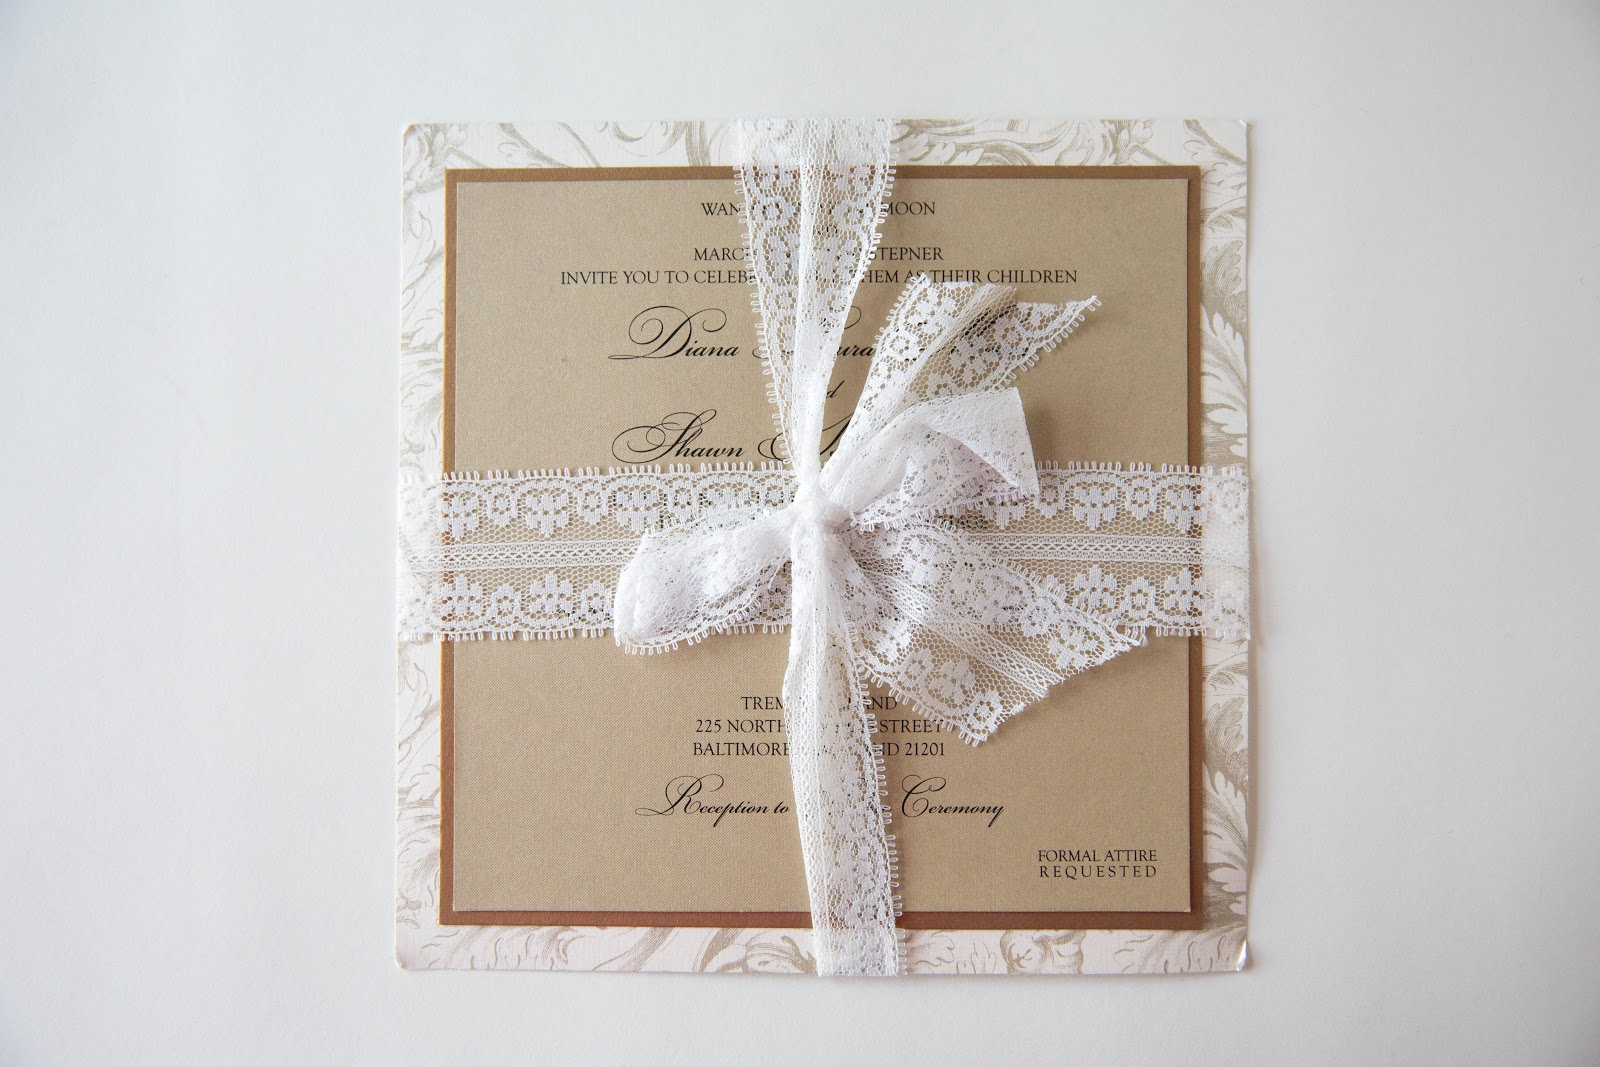 Wedding Invitation Lace: Kindly R.S.V.P. Designs' Blog: Lace Ribbon Wedding